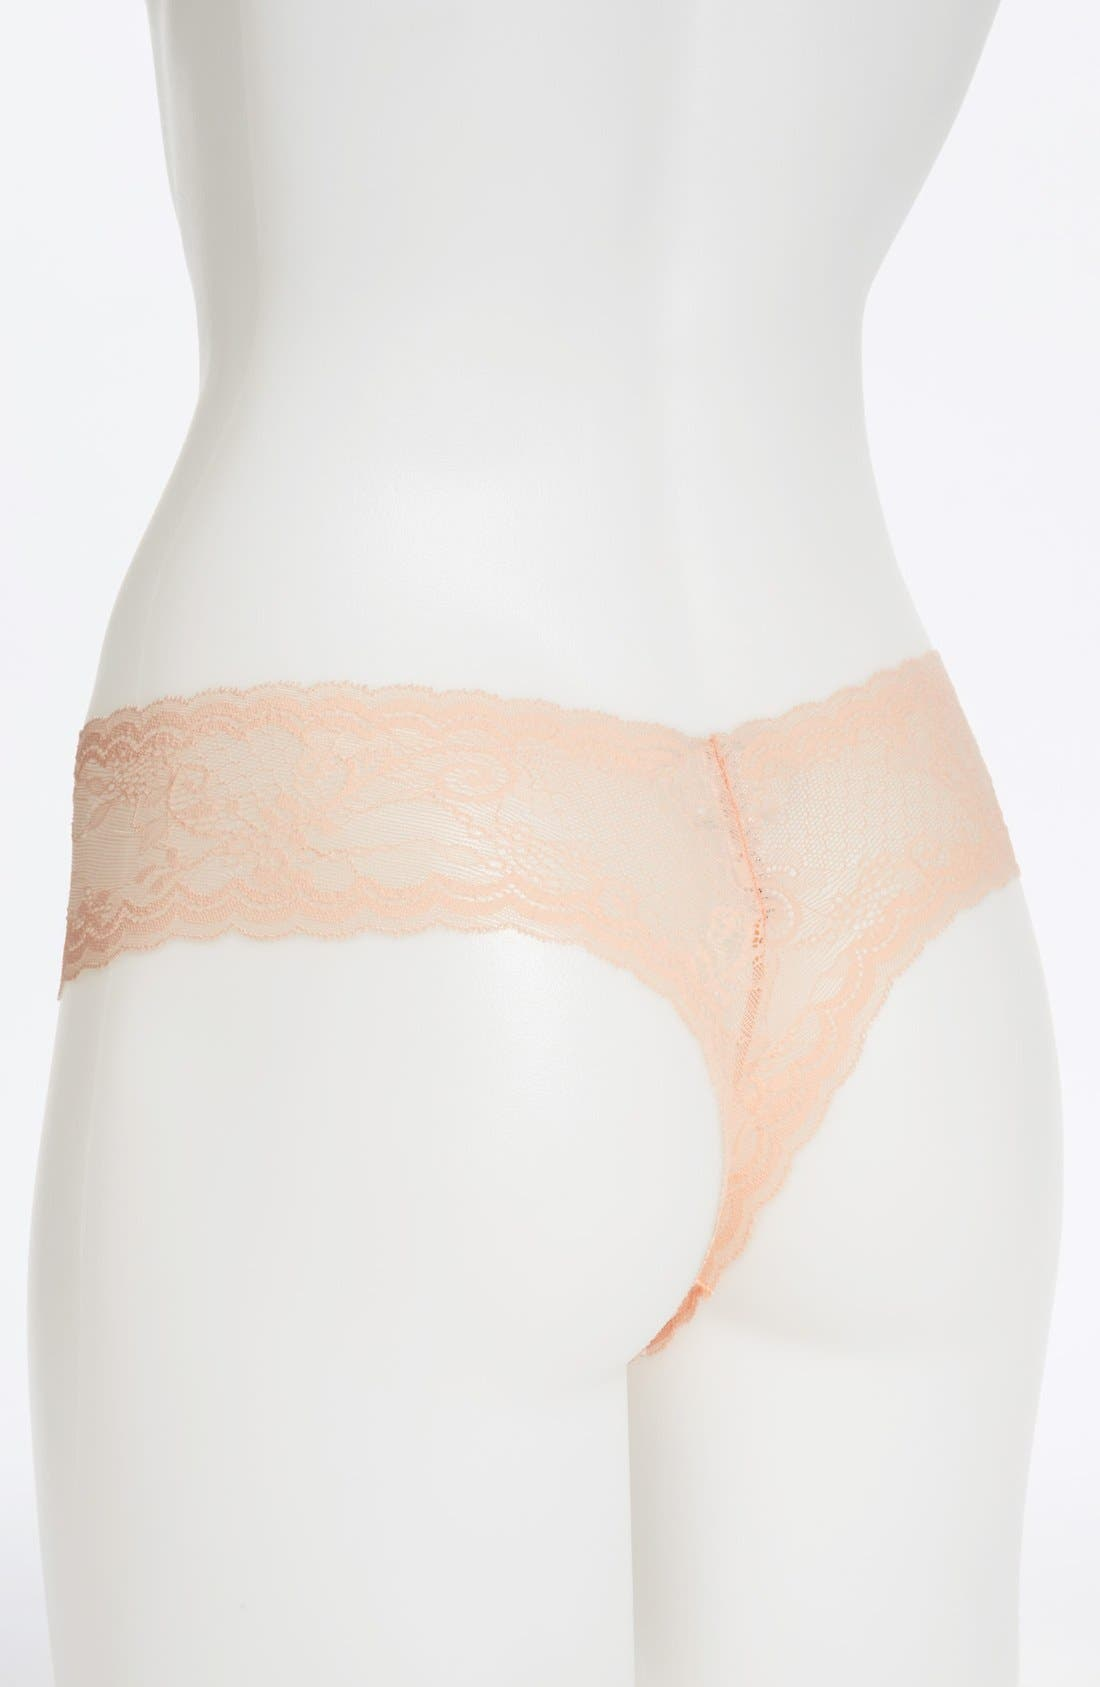 'Trenta' Low Rise Lace Thong,                             Alternate thumbnail 144, color,